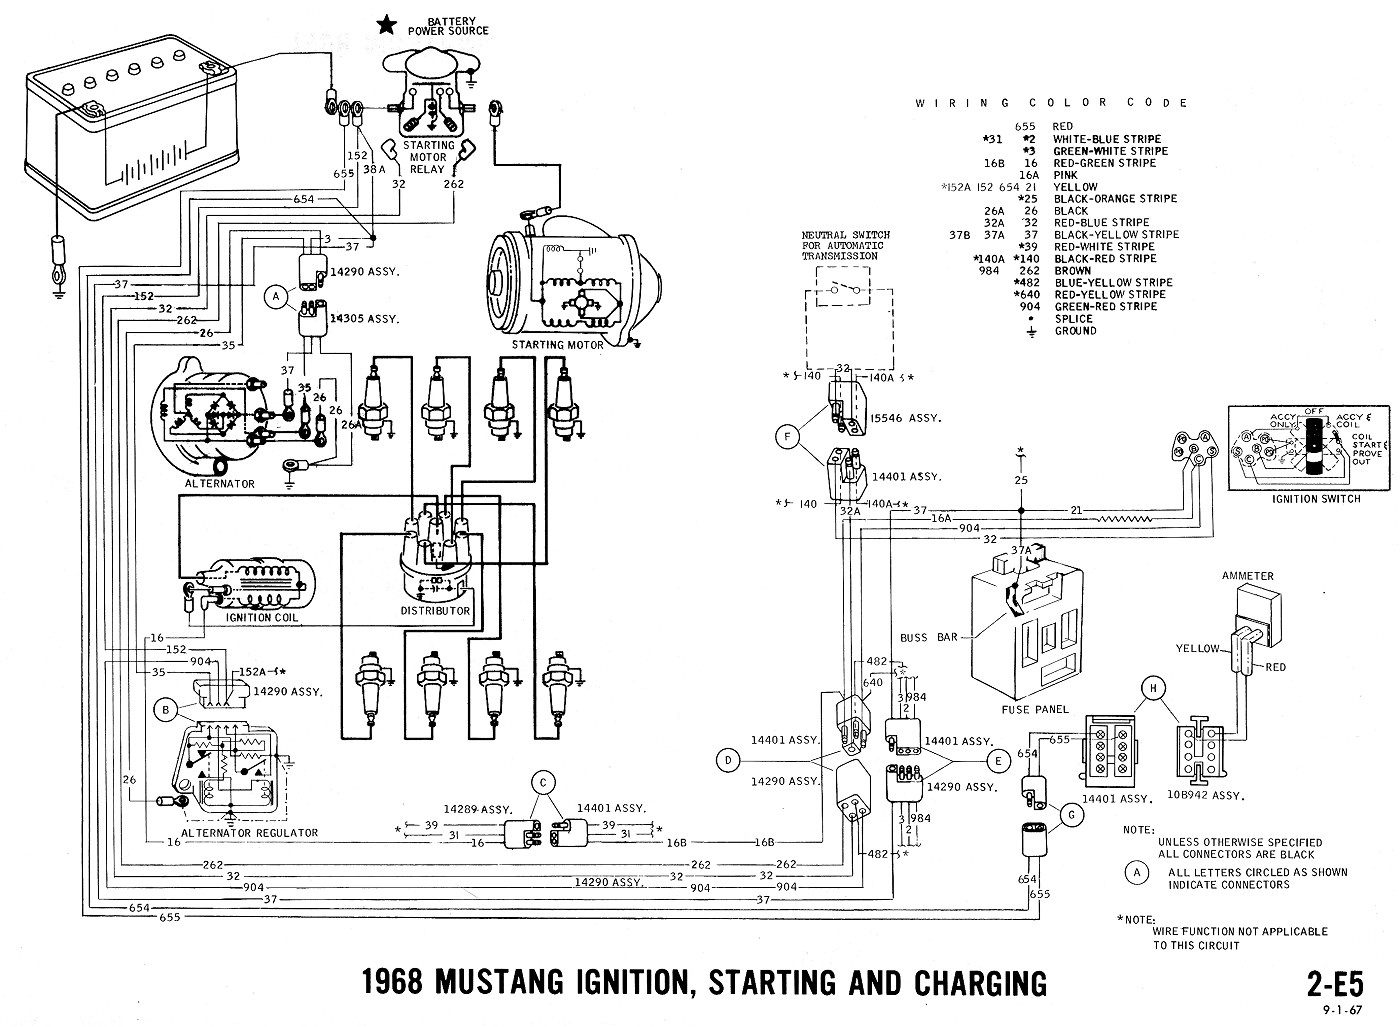 Amp Meter Wiring Diagram 1966 Mustang Library Ford 1968 Diagrams Evolving Software Vacuum Line 67 Charge Light